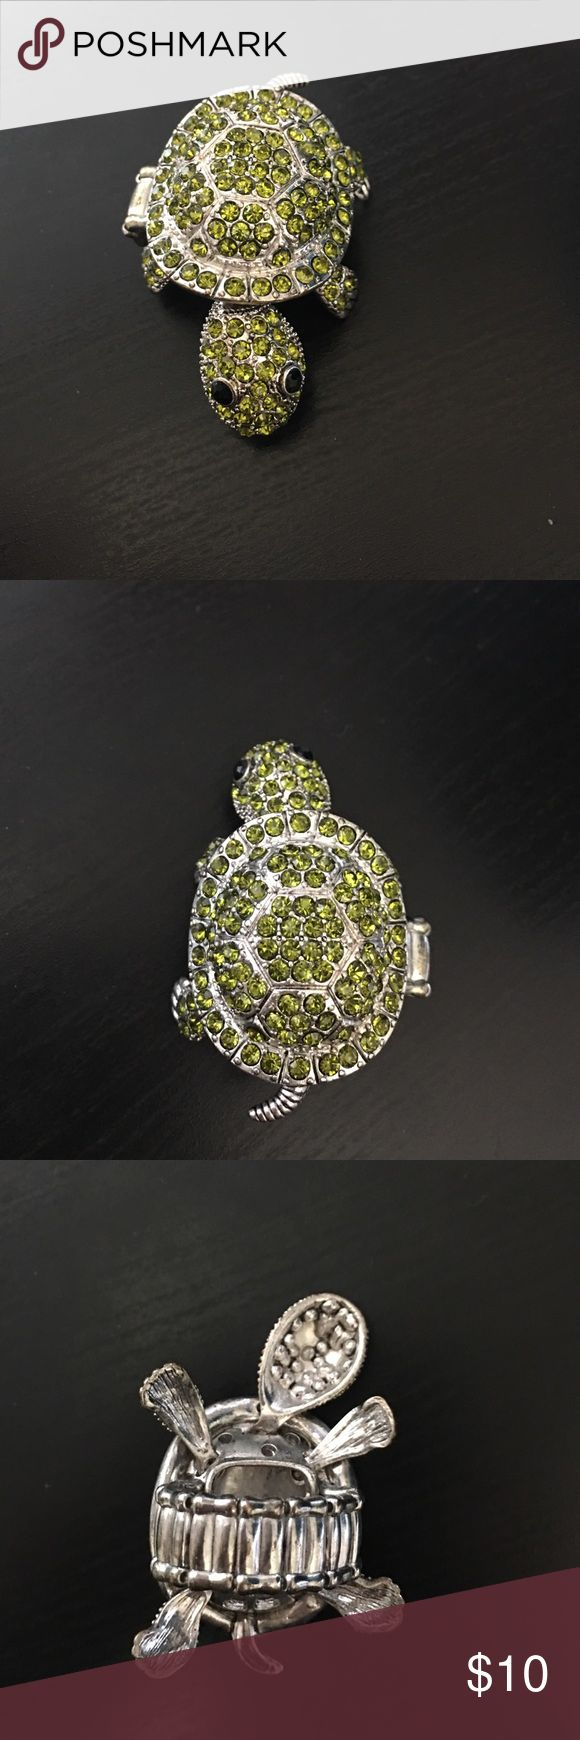 Moveable Turtle Ring Love turtles? Then this ring is perfect for you. Ring band is stretchy and will fit almost any finger. It has pretty green stones and none of them are missing. It's looking for a new home. Charming Charlie Jewelry Rings